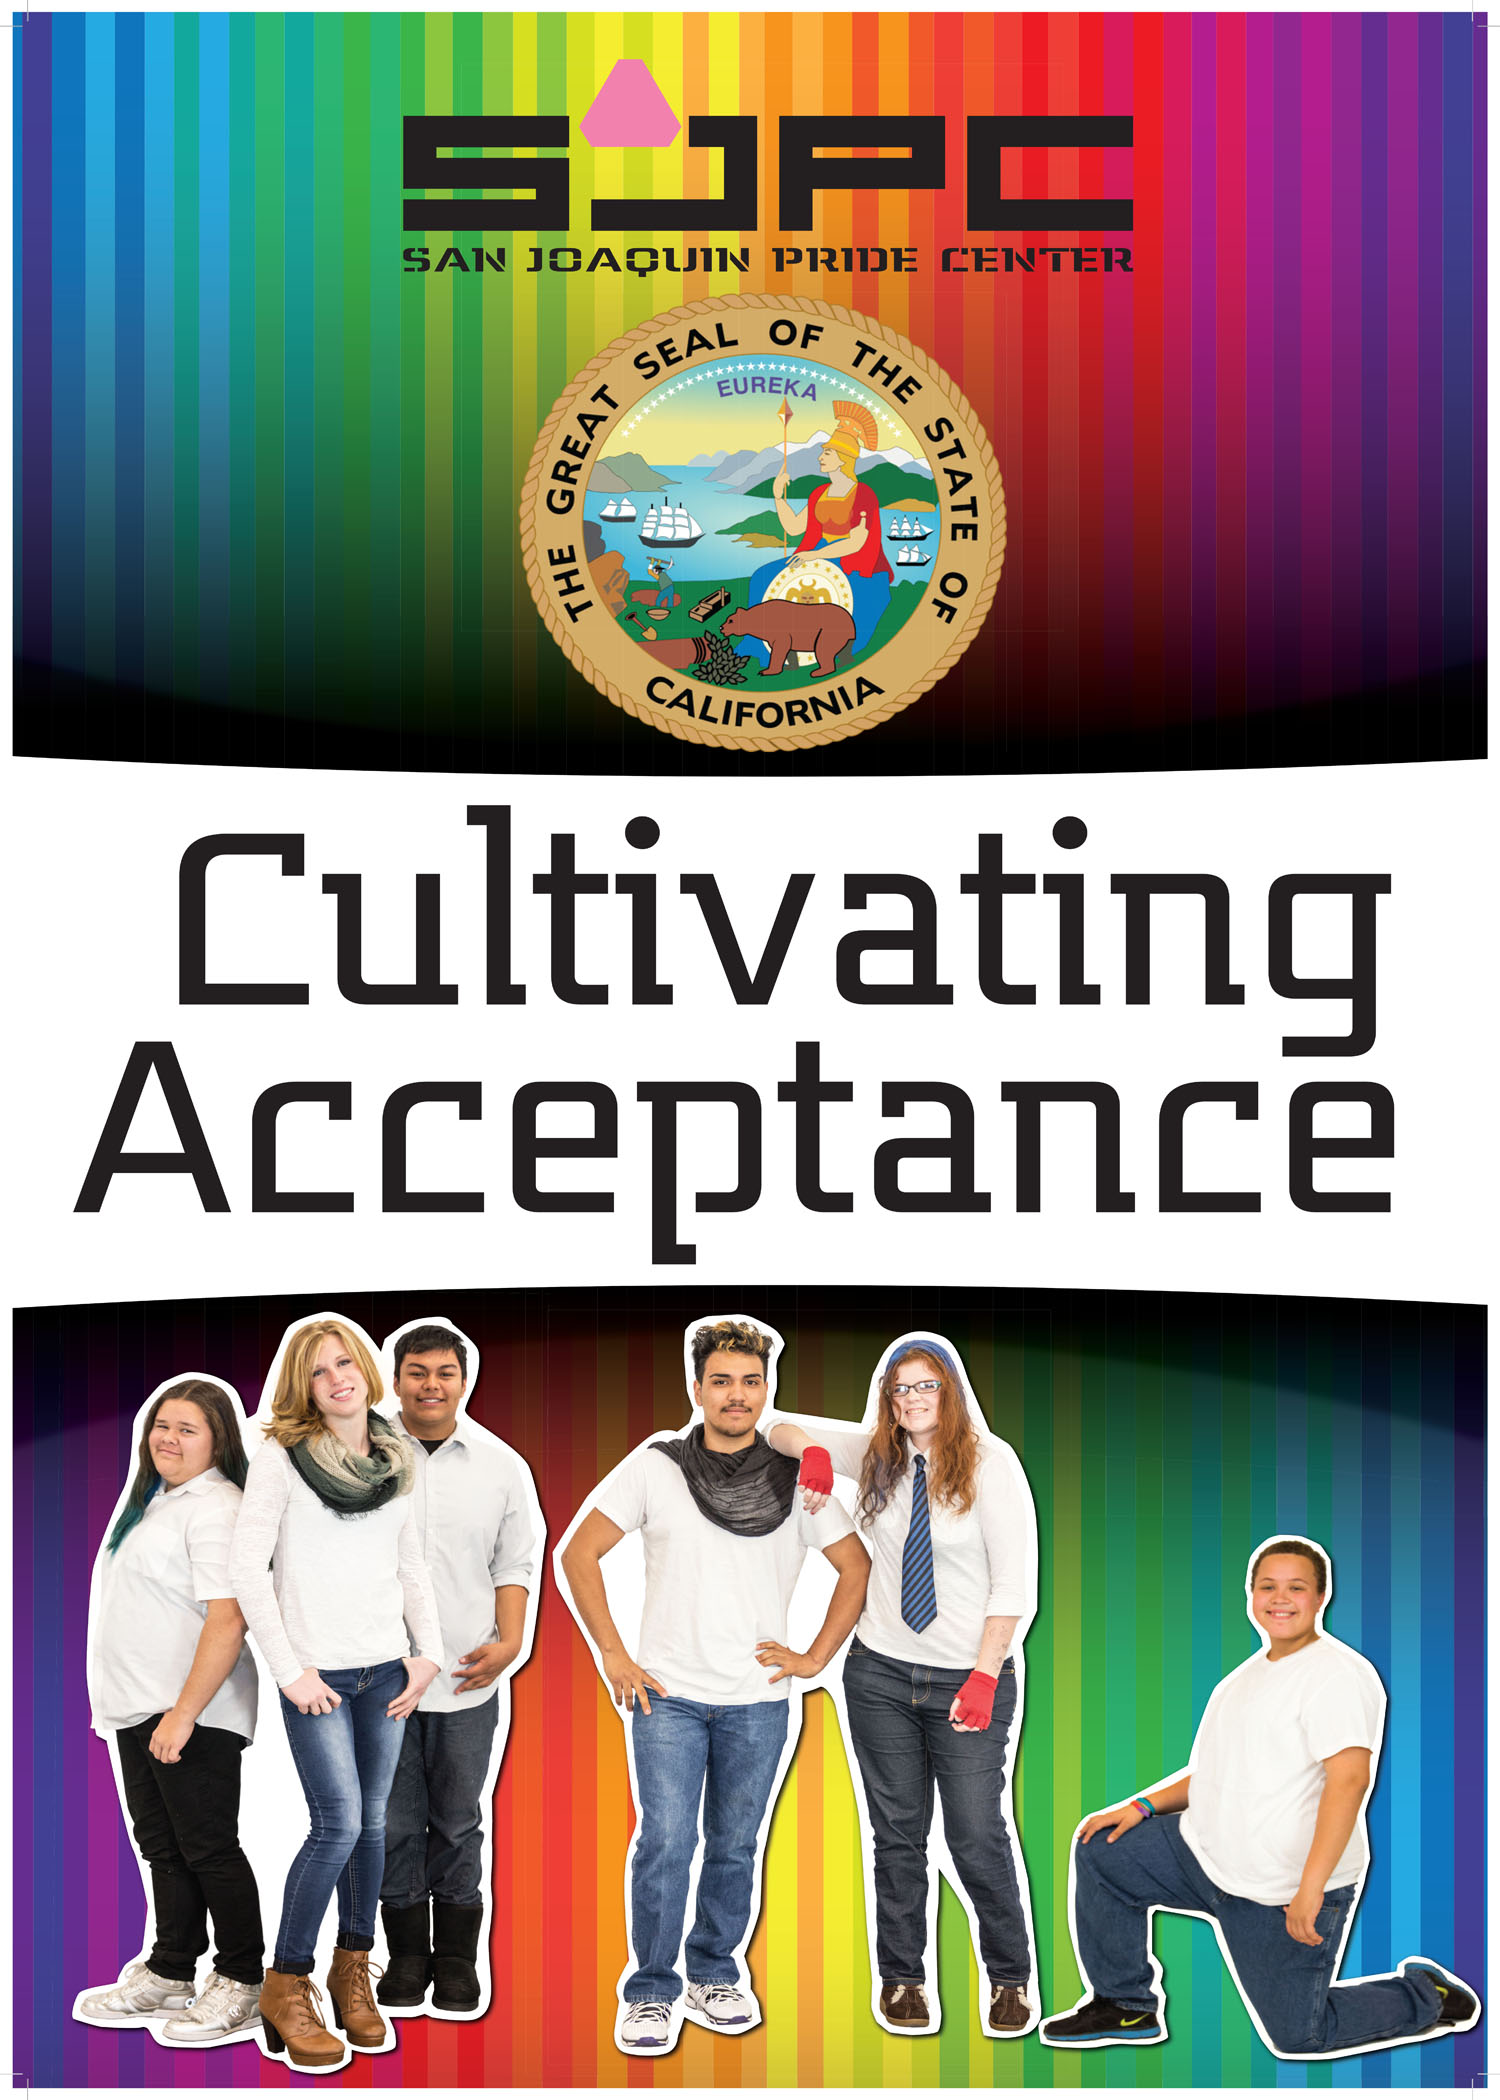 Cultivating_Acceptance_POSTER.jpg